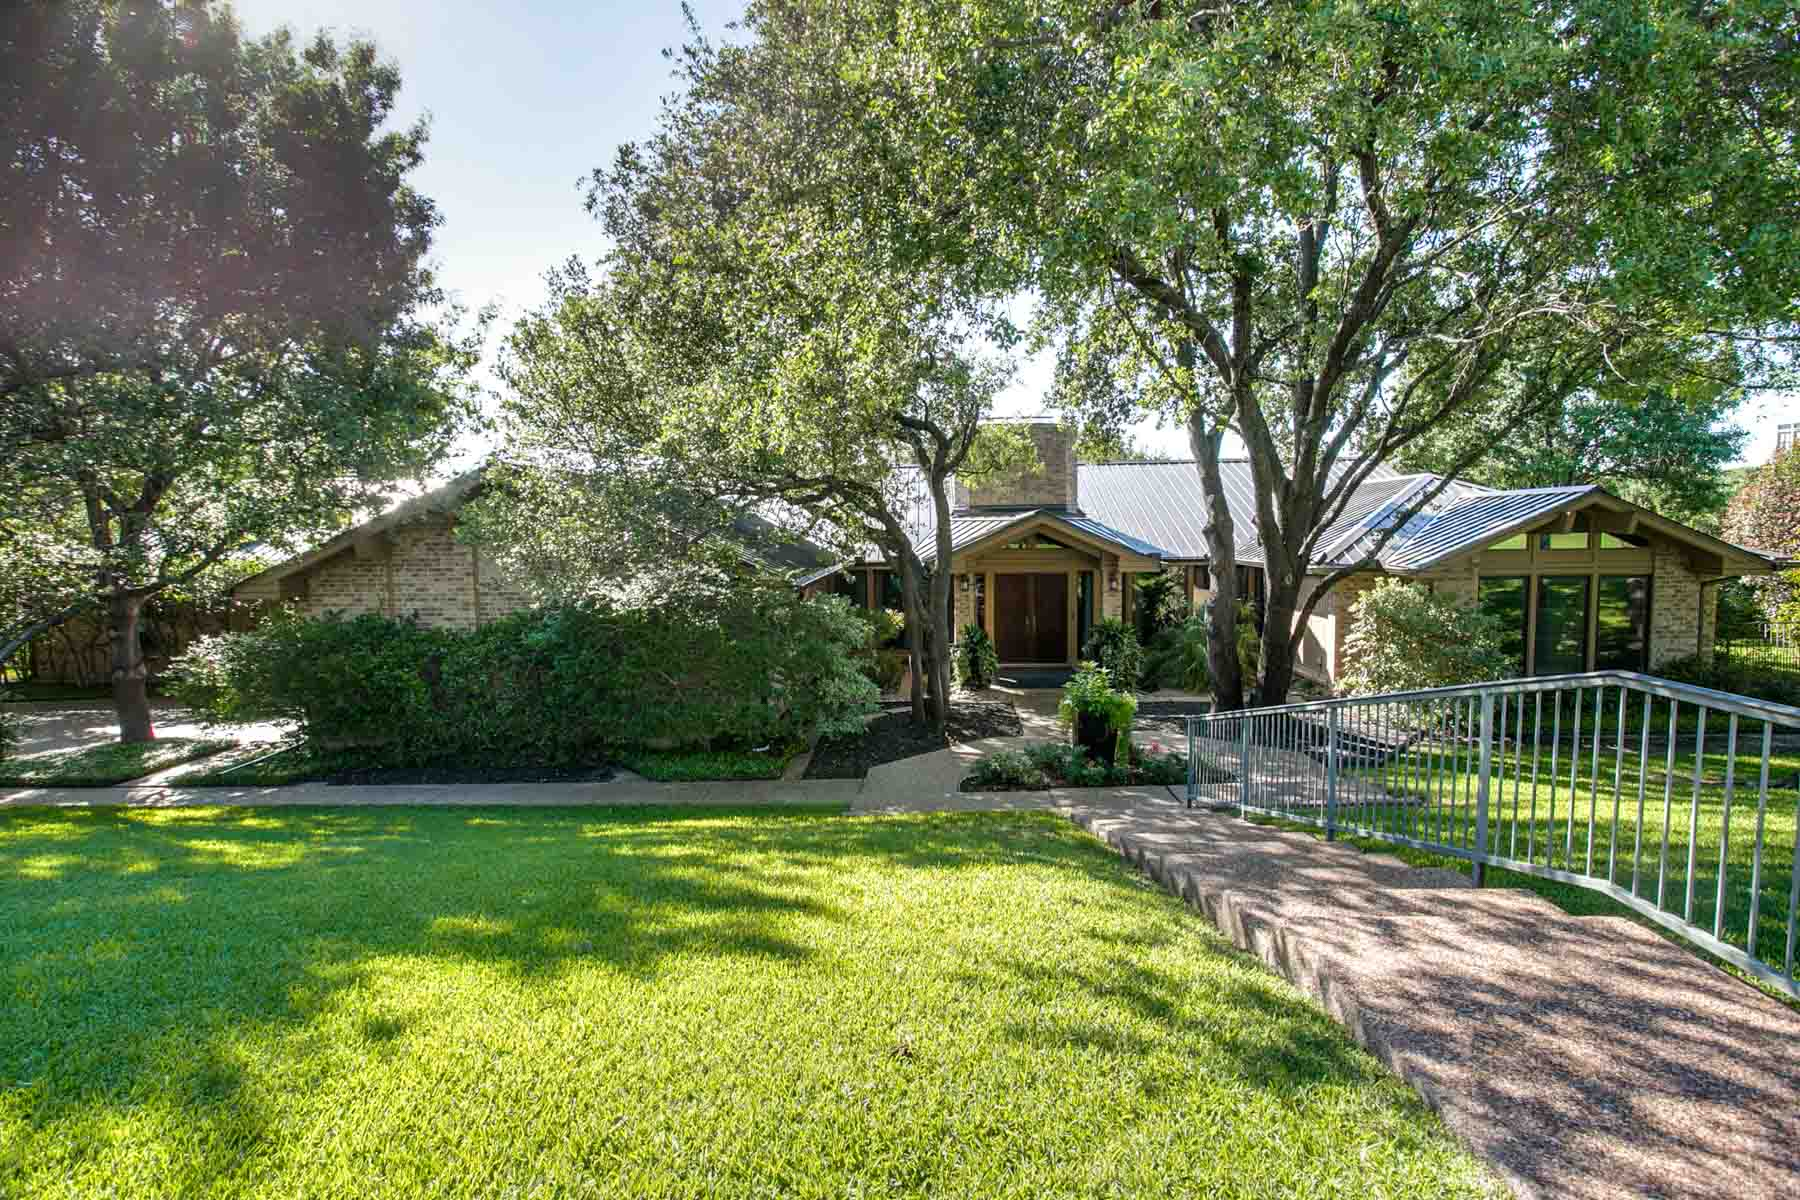 Single Family Home for Sale at Westover Hills Cul-De-Sac One-Story Gem 1513 Shady Oaks Lane Westover Hills, Texas, 76107 United States